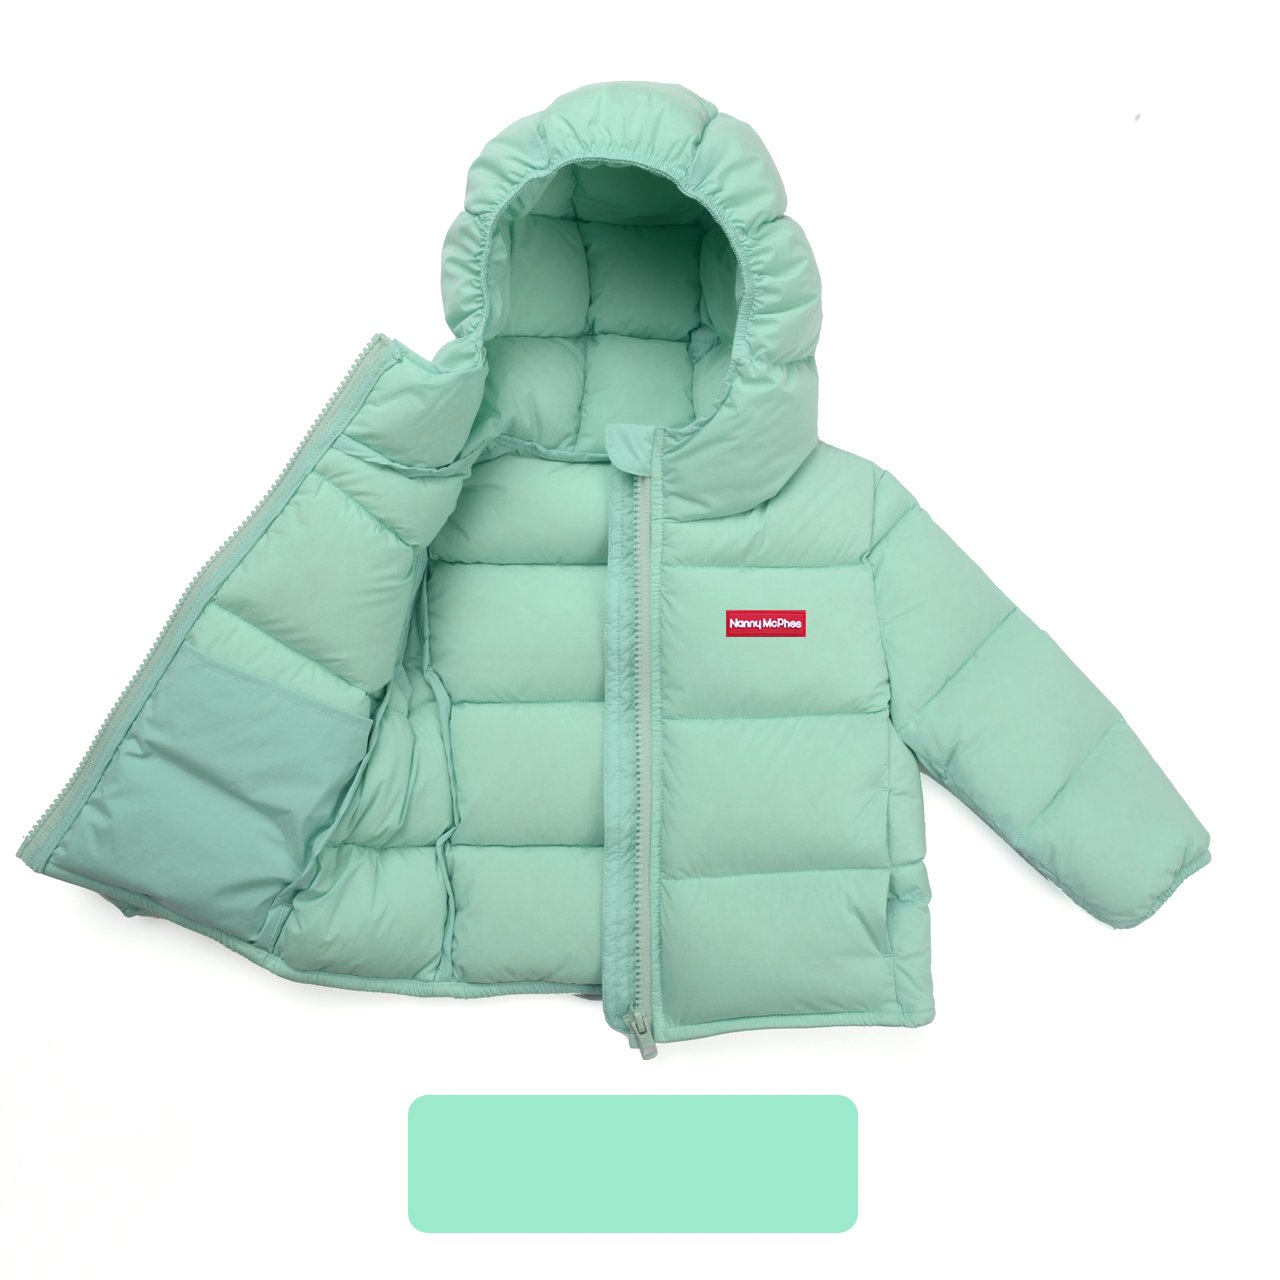 Nanny McPhee Kids Down Coat Unisex Baby Hooded Lightweight Down Puffer Jacket Outwear (More Styles Available) by Nanny McPhee